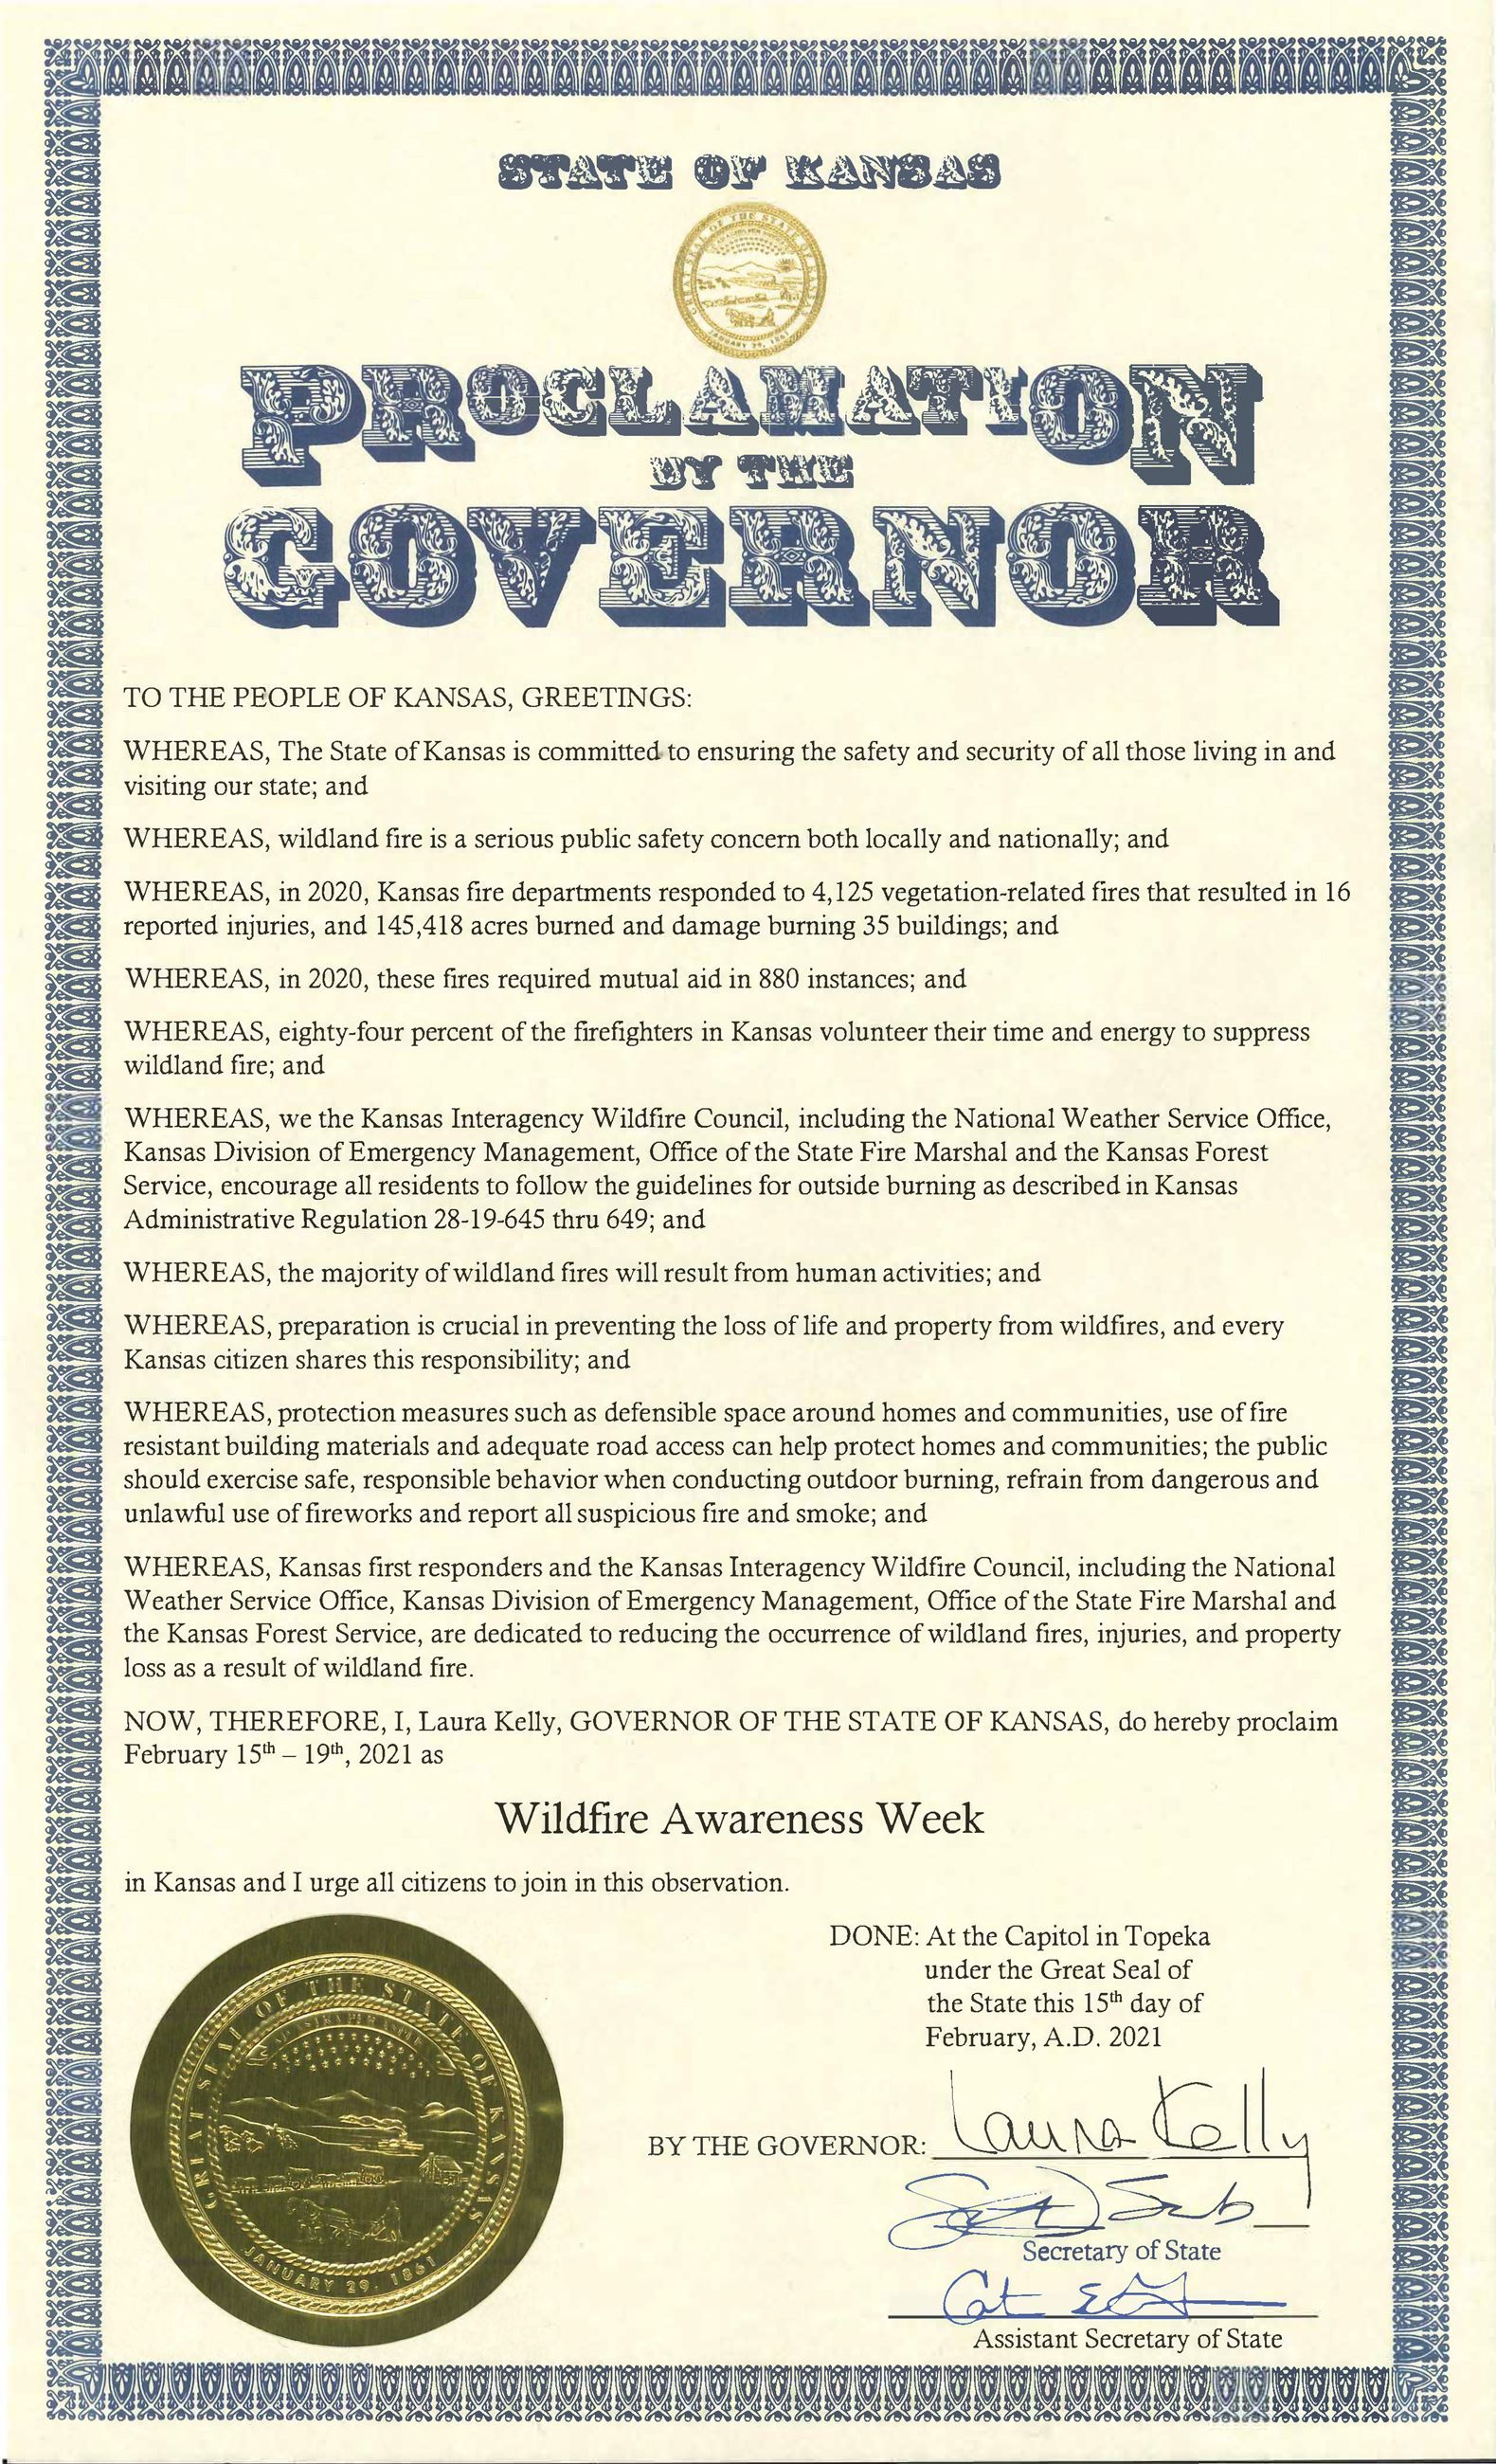 Wildfire Awareness Week Proclamation